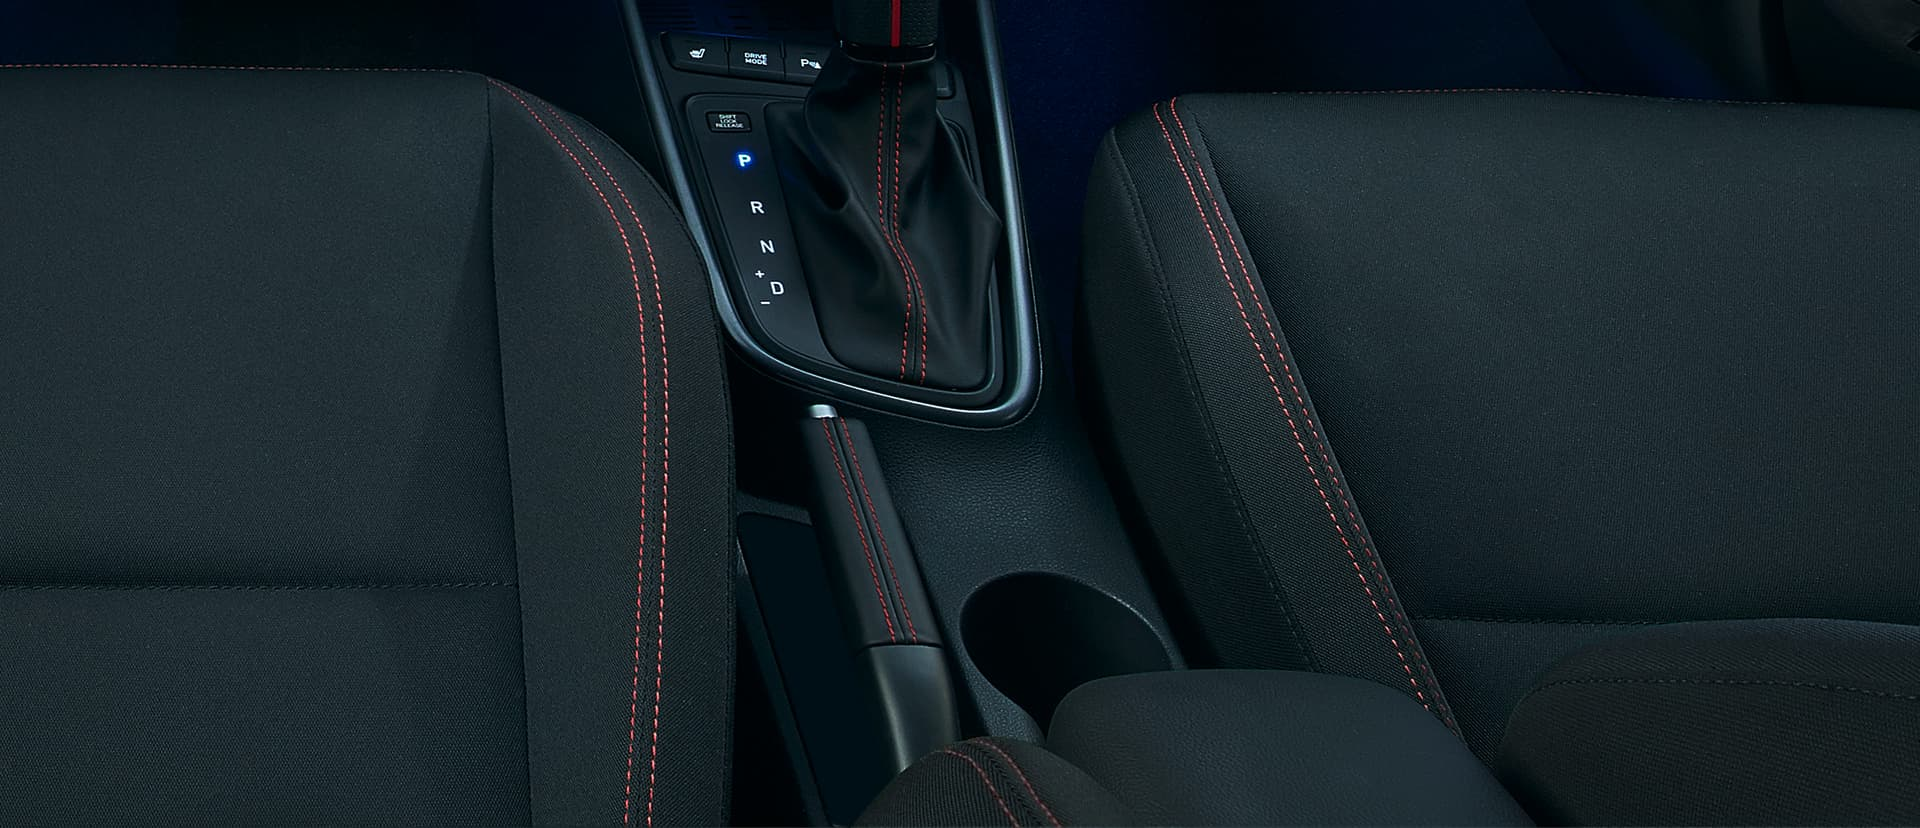 The iconic red stitching across the interior of the all-new Hyundai i20 N Line.